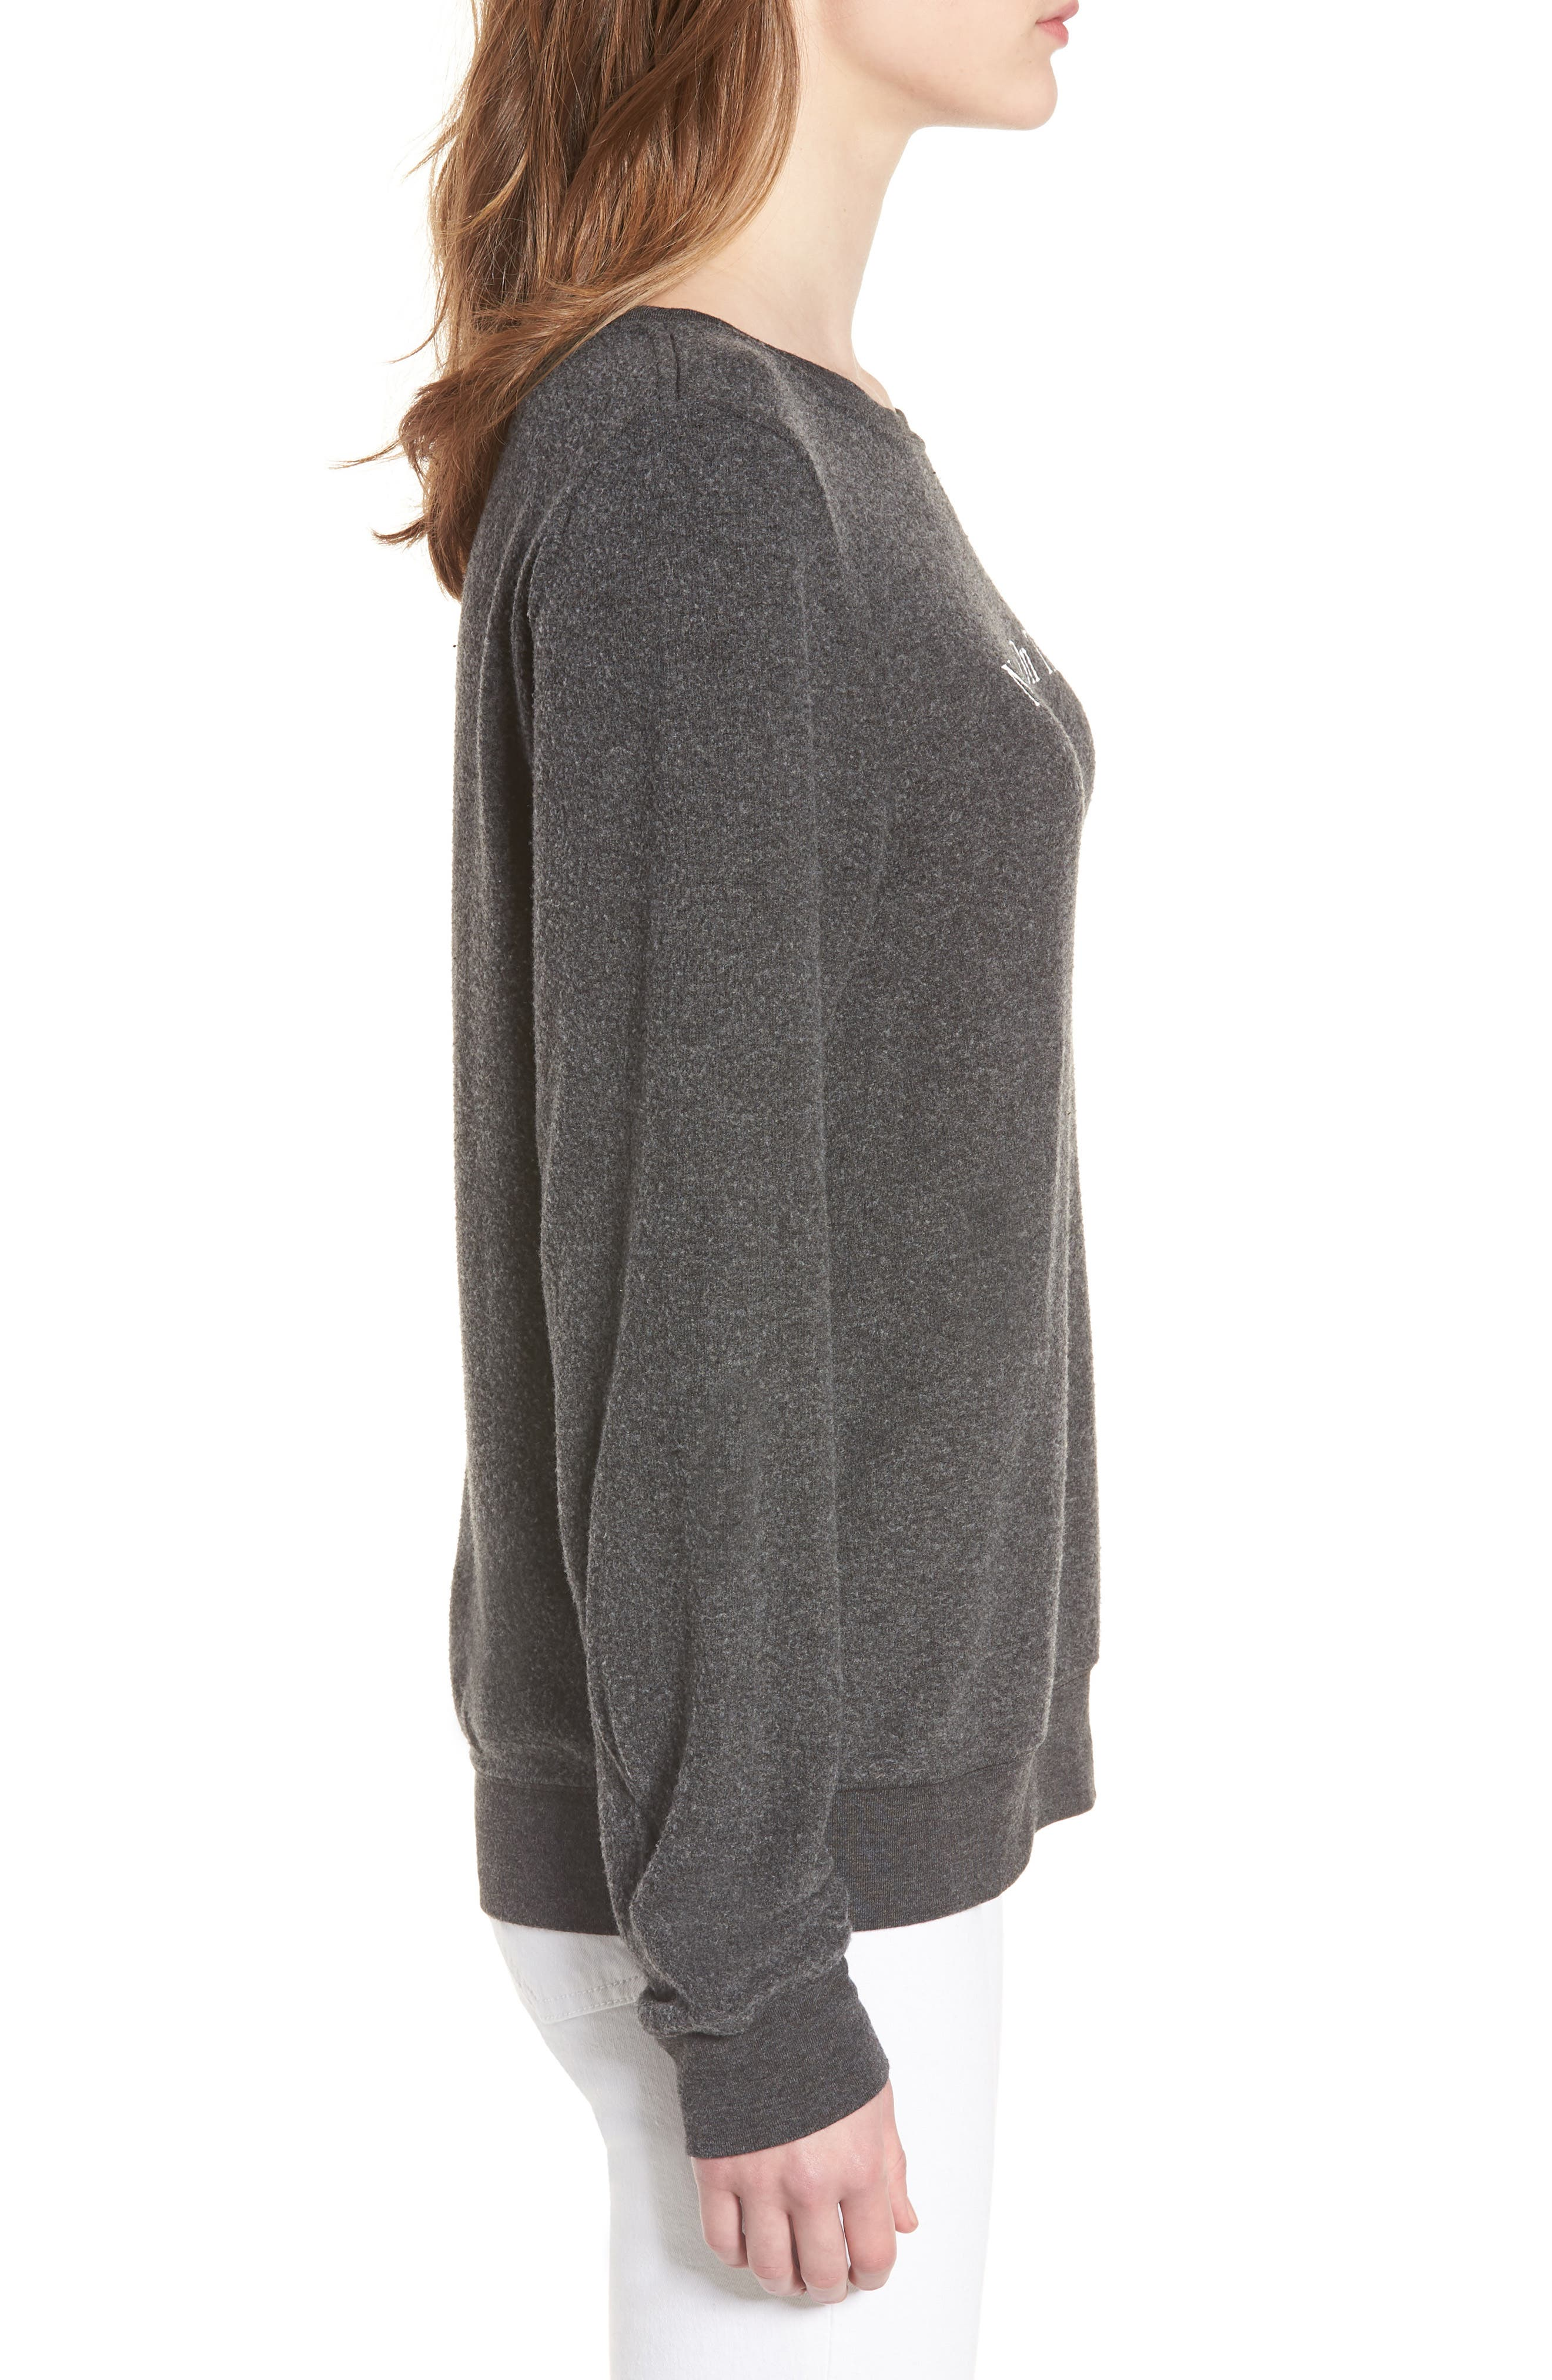 Never on Time Baggy Beach Jumper Pullover,                             Alternate thumbnail 3, color,                             001